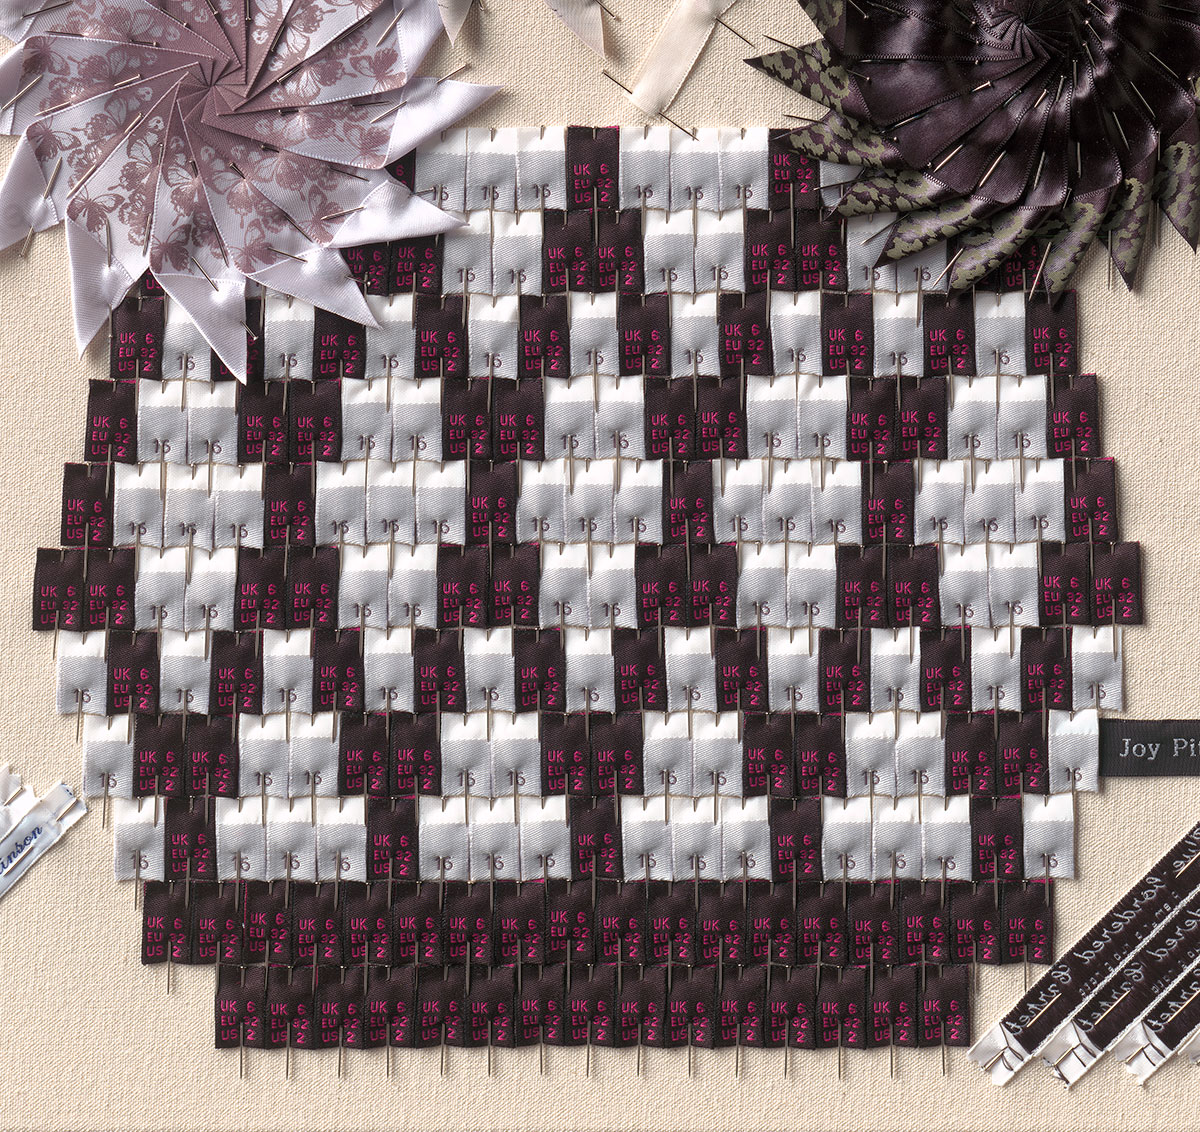 Joy Pitts_803 scrap clothing labels with dressmaker pins on canvas_2.jpg